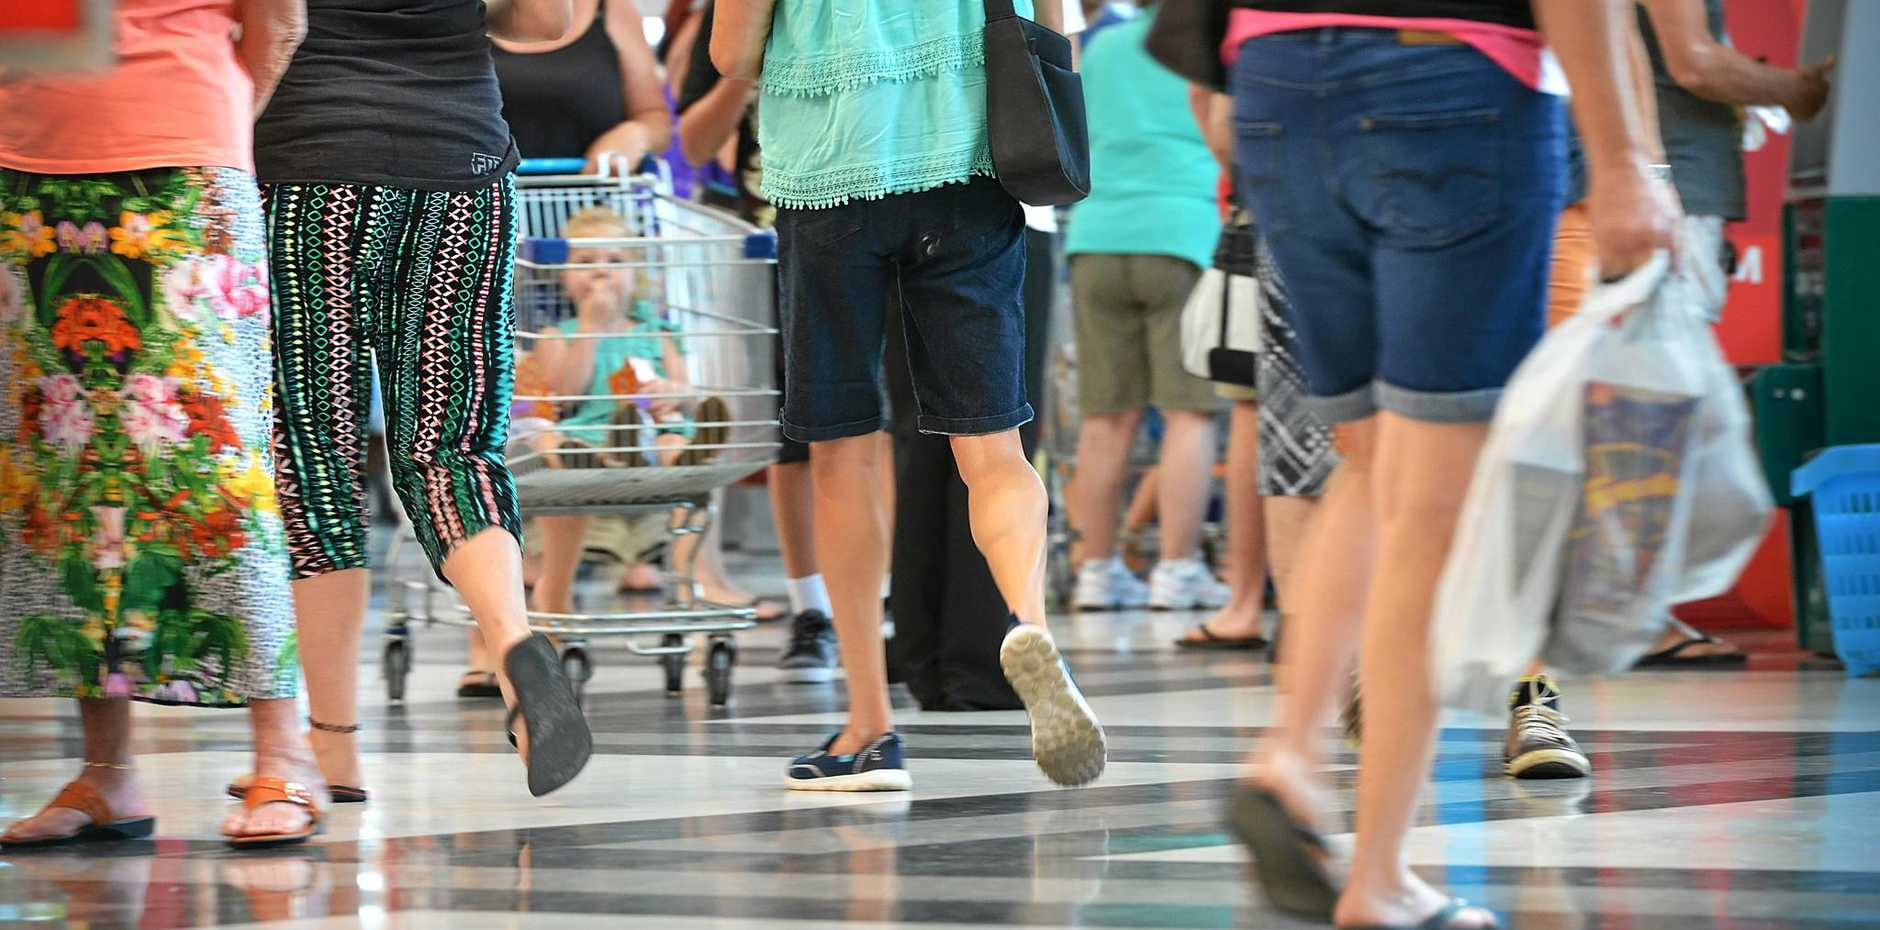 Mackay police Senior Constable Steve Smith says there's been a spate of thefts at Mackay shopping centres.